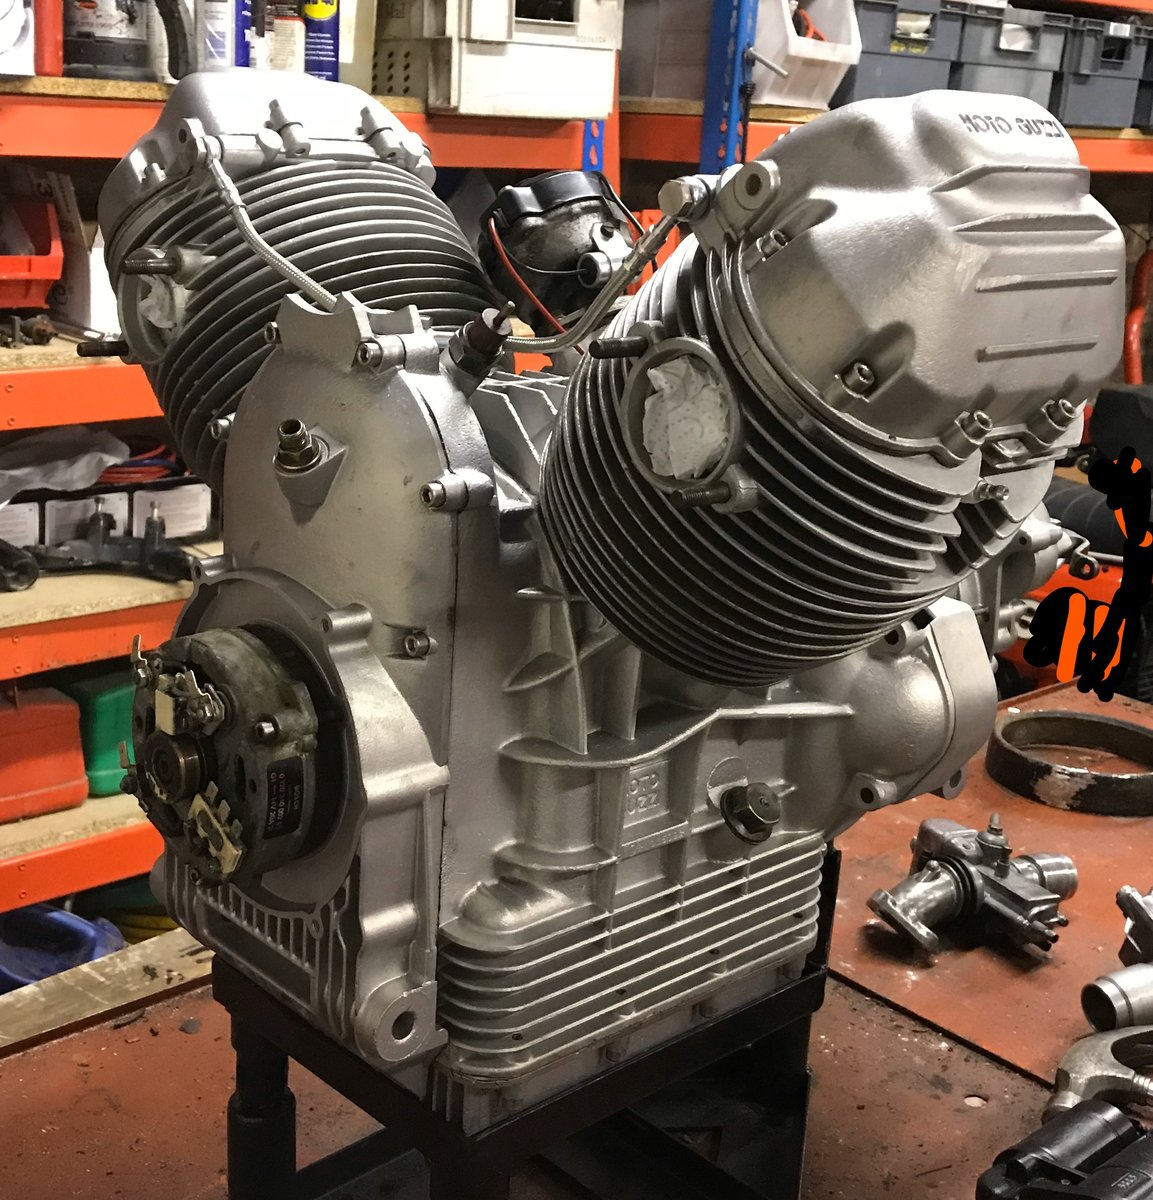 1976 Moto Guzzi 850 T3 Rebuilt Engine and Gearbox For Sale (picture 3 of 3)